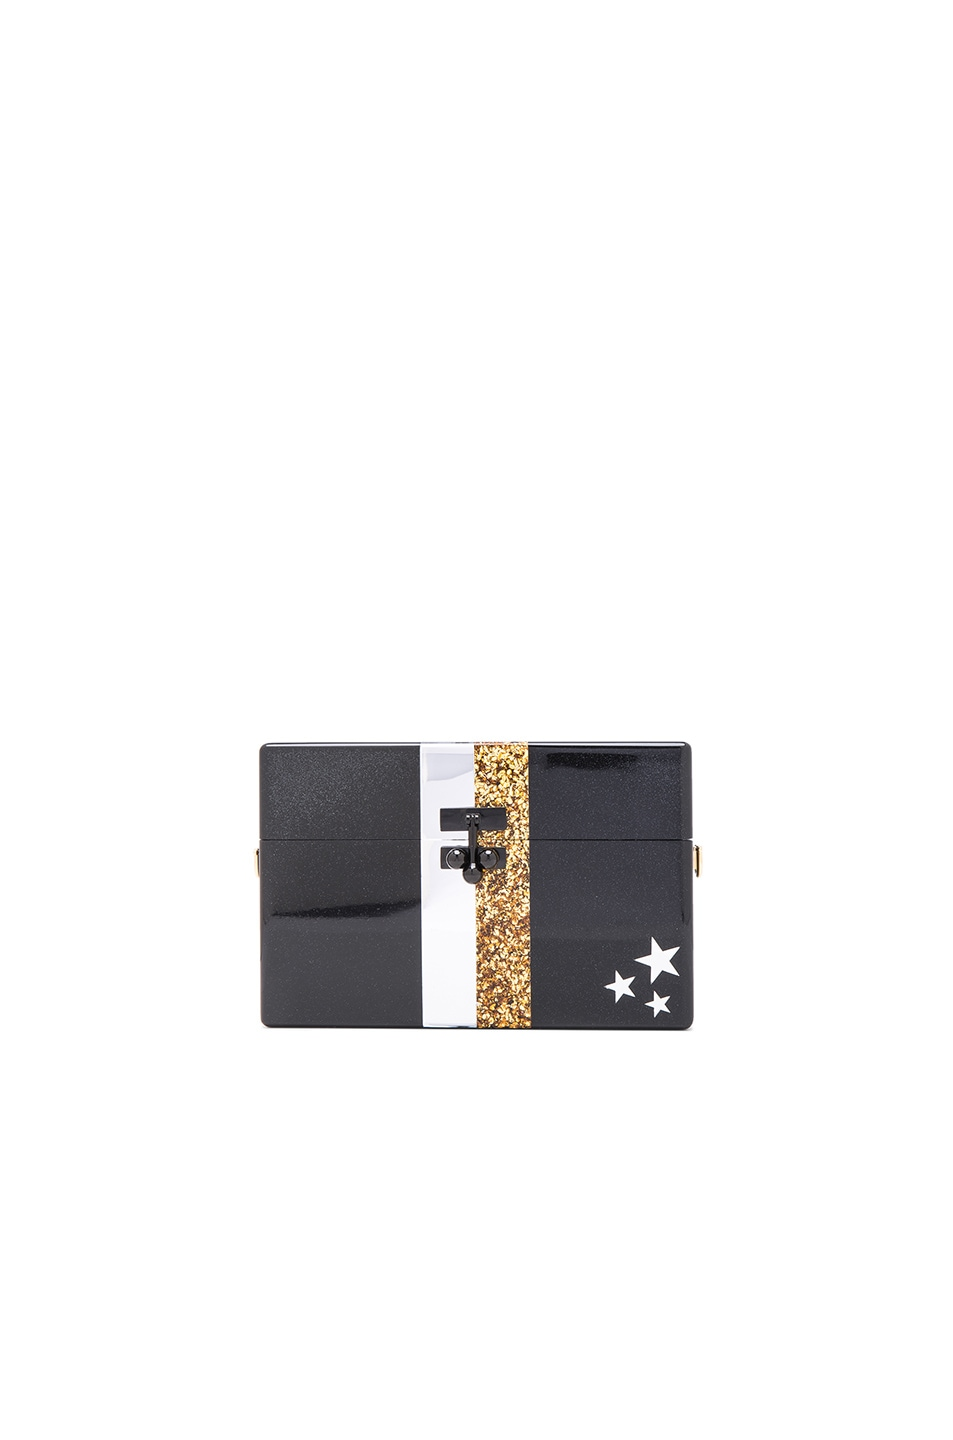 Image 1 of Edie Parker Small Vintage Trunk Clutch in Obsidian Multi